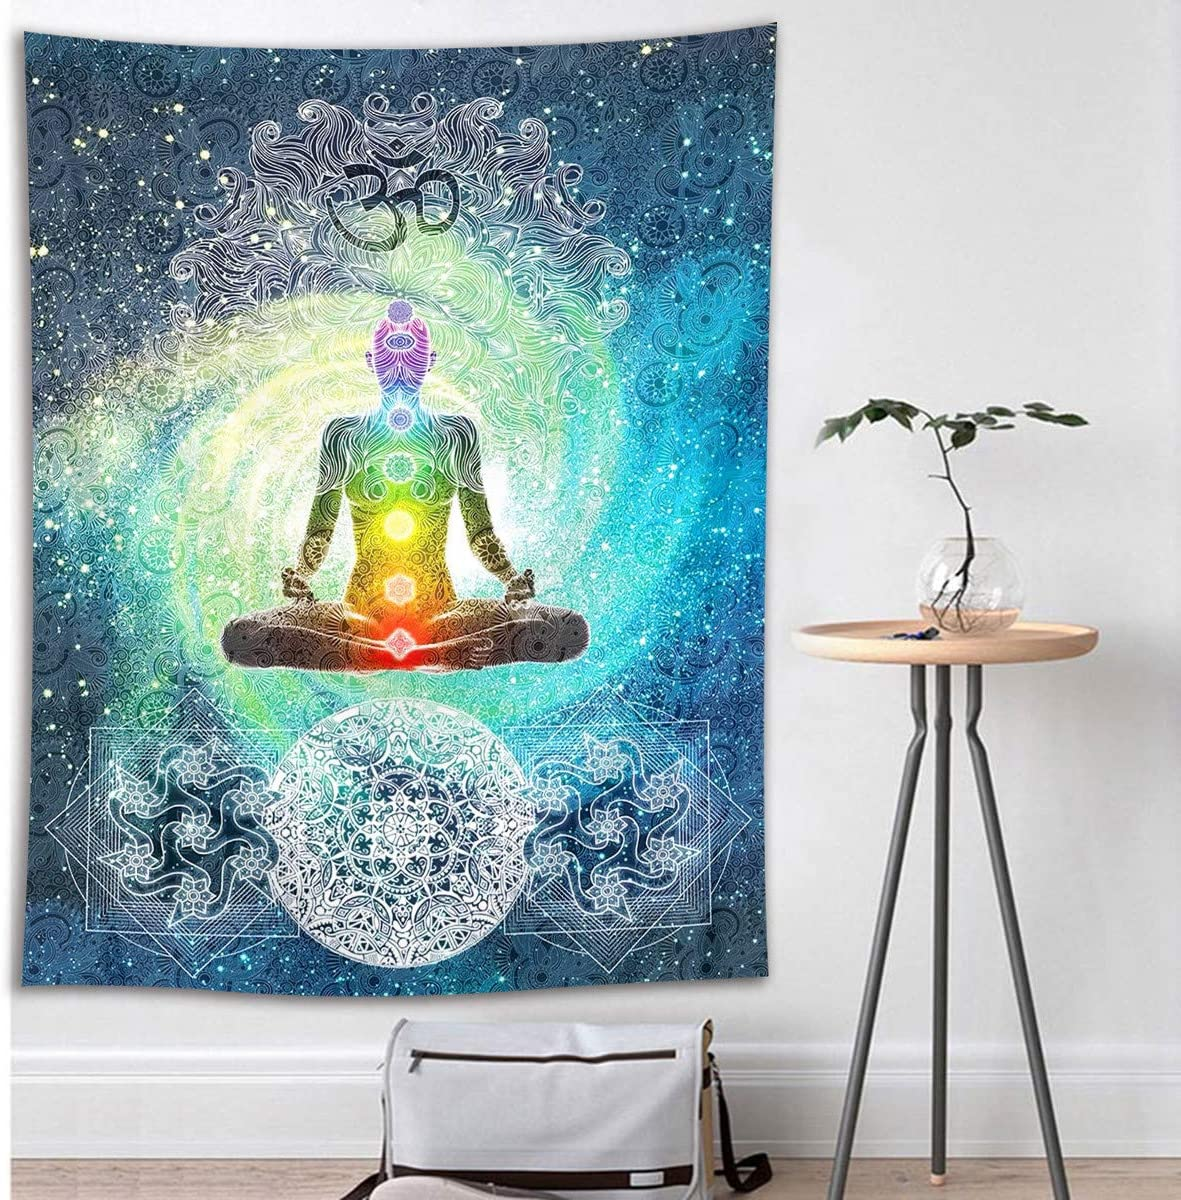 HVEST Yoga Tapestry Zen Meditation in Space Wall Hanging Mandala Tapestries for Bedroom Living Room Dorm Decor,60Wx80H inches